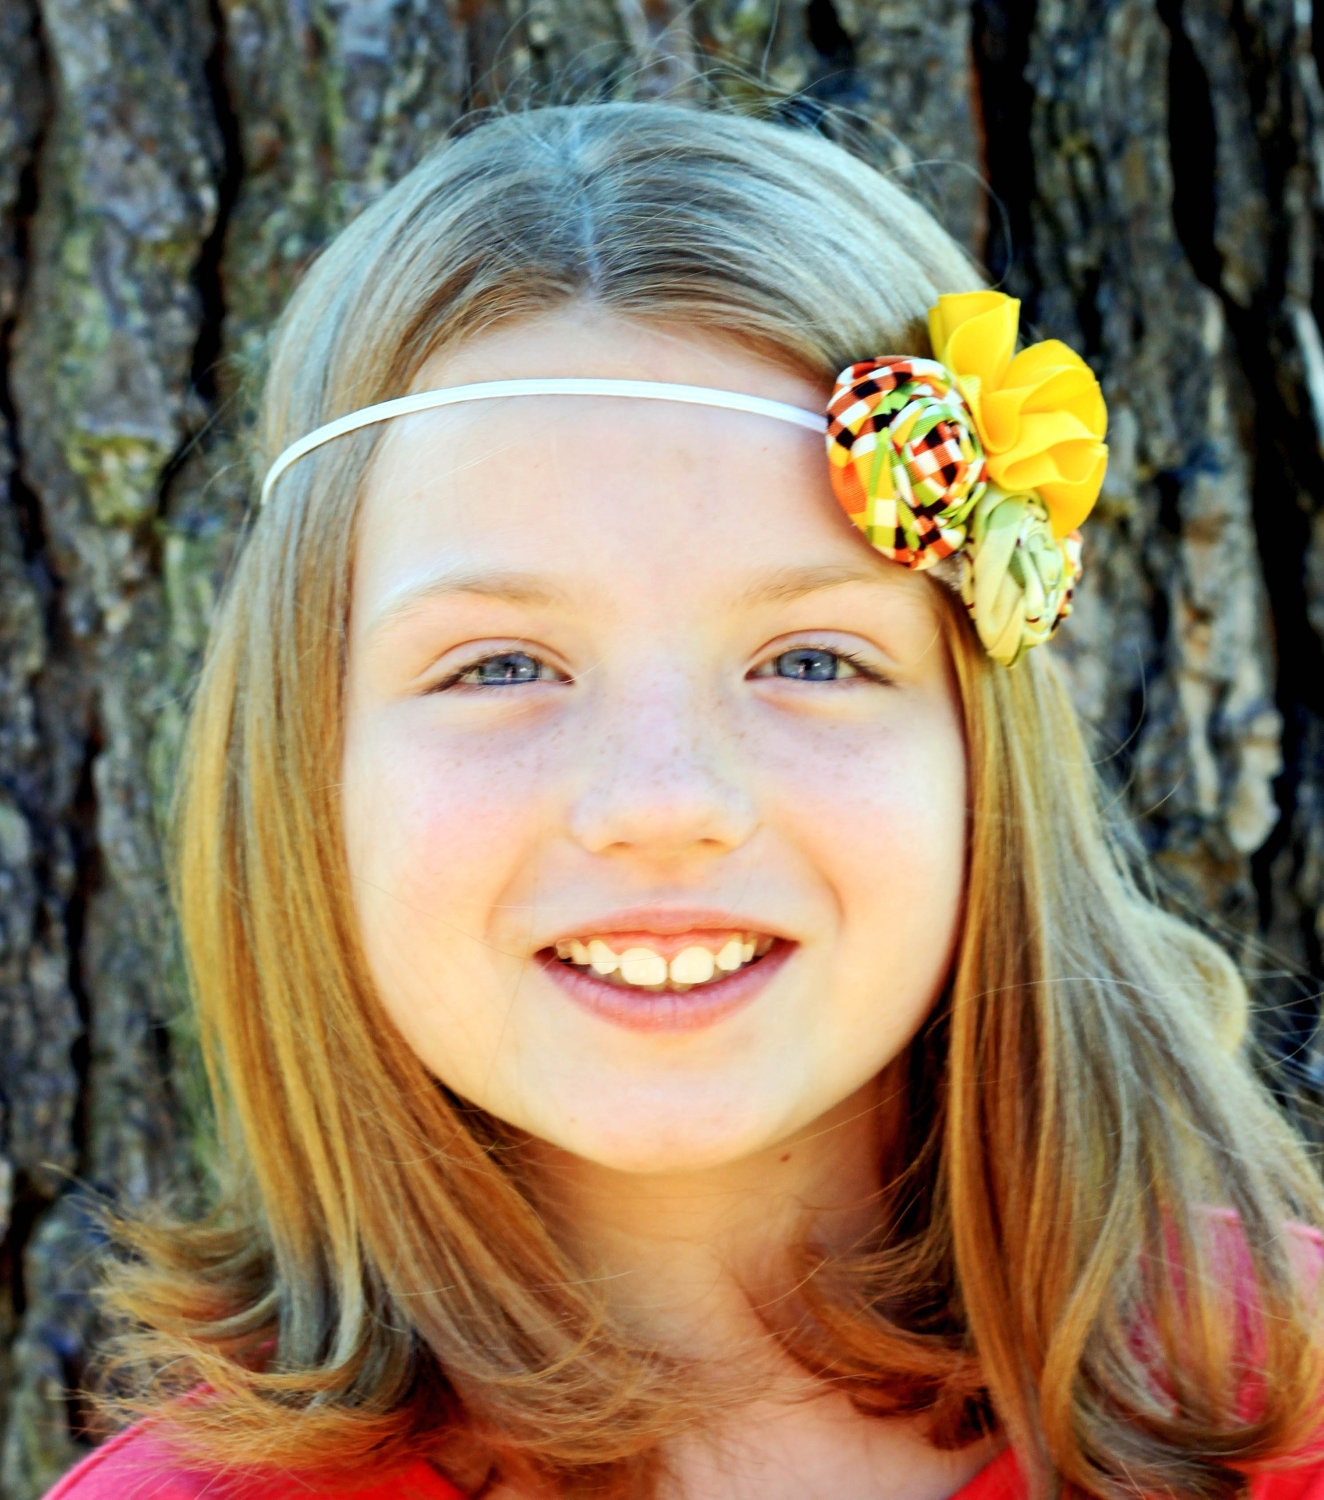 Fall Rosette Headband - Orange Plaid, Green, and Yellow - All Sizes Available - Elastic Headband or Plastic and Metal Headbands available